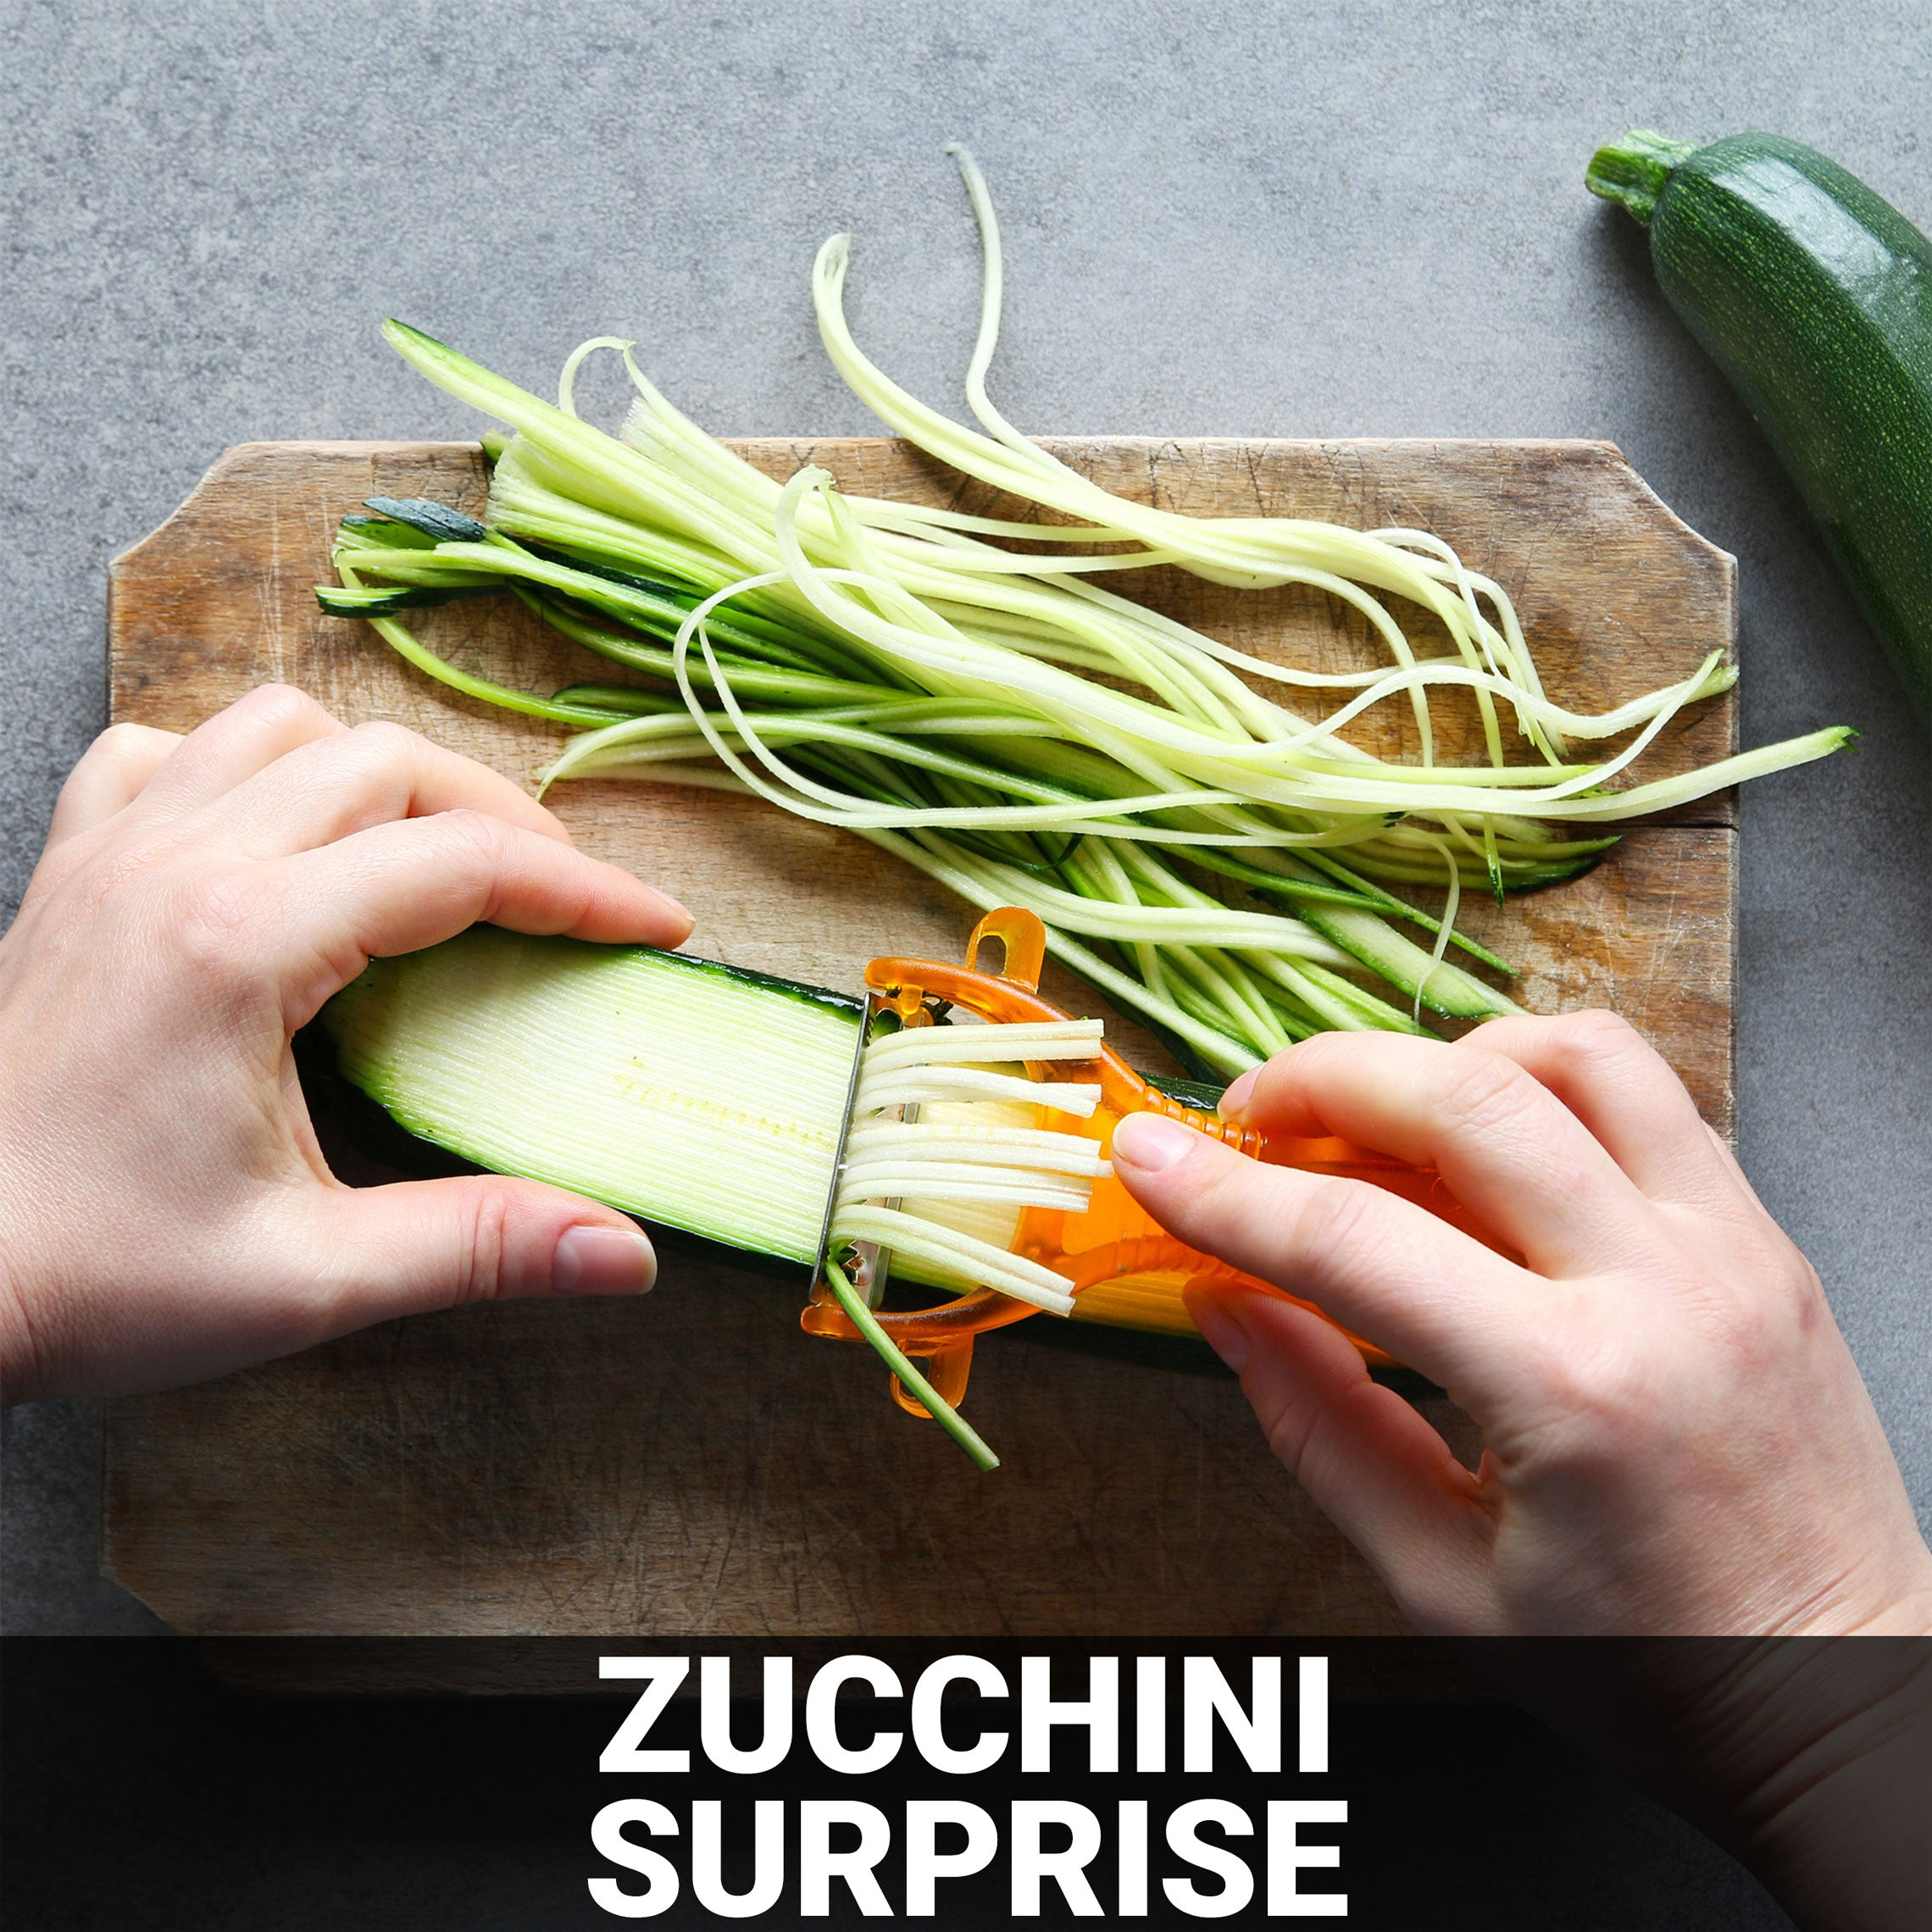 Zucchini Surprise Recipe - Foods Alive